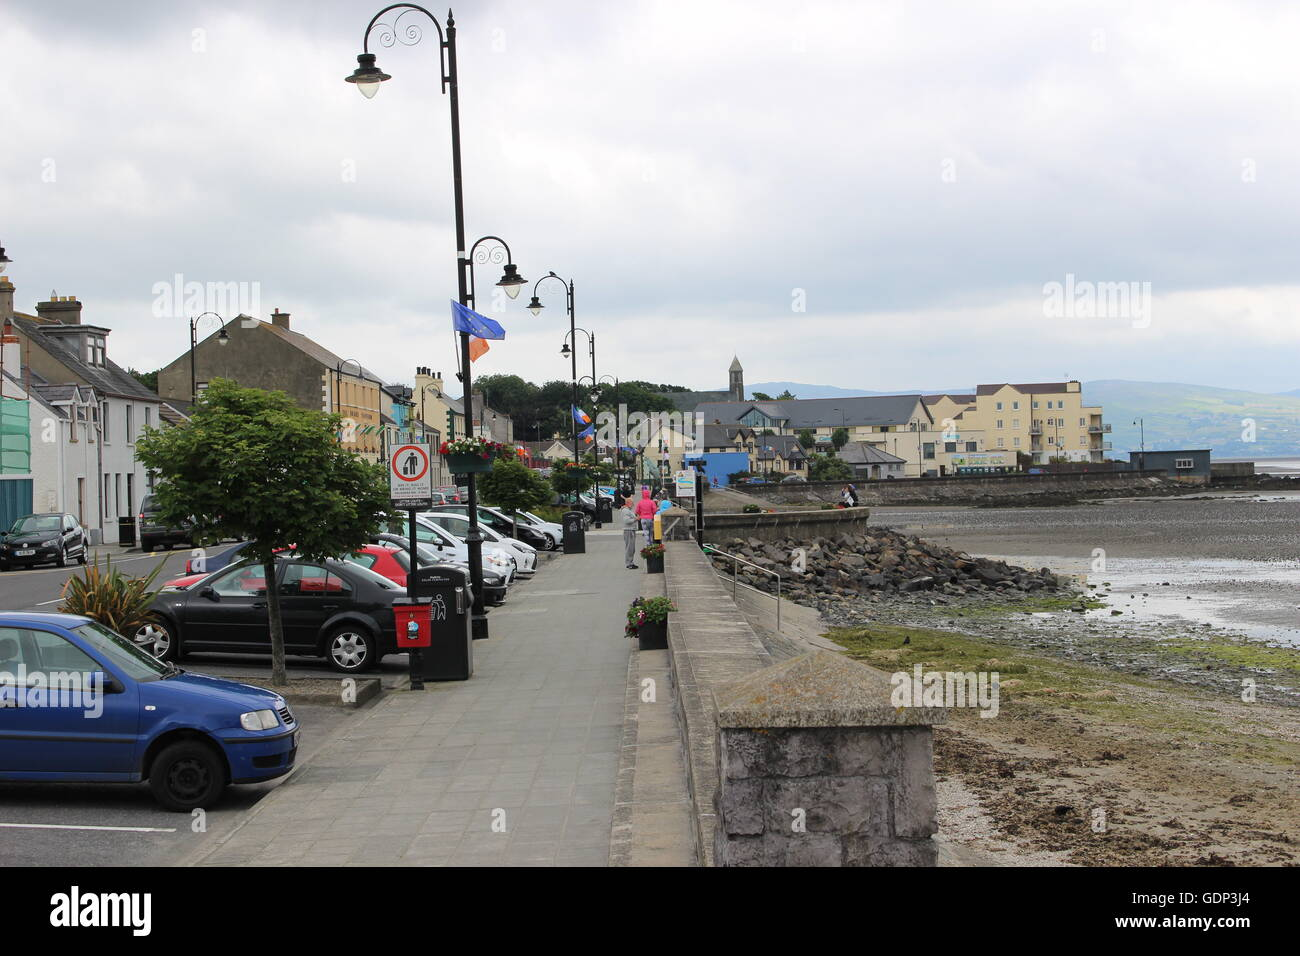 The best available hotels & places to stay near Blackrock